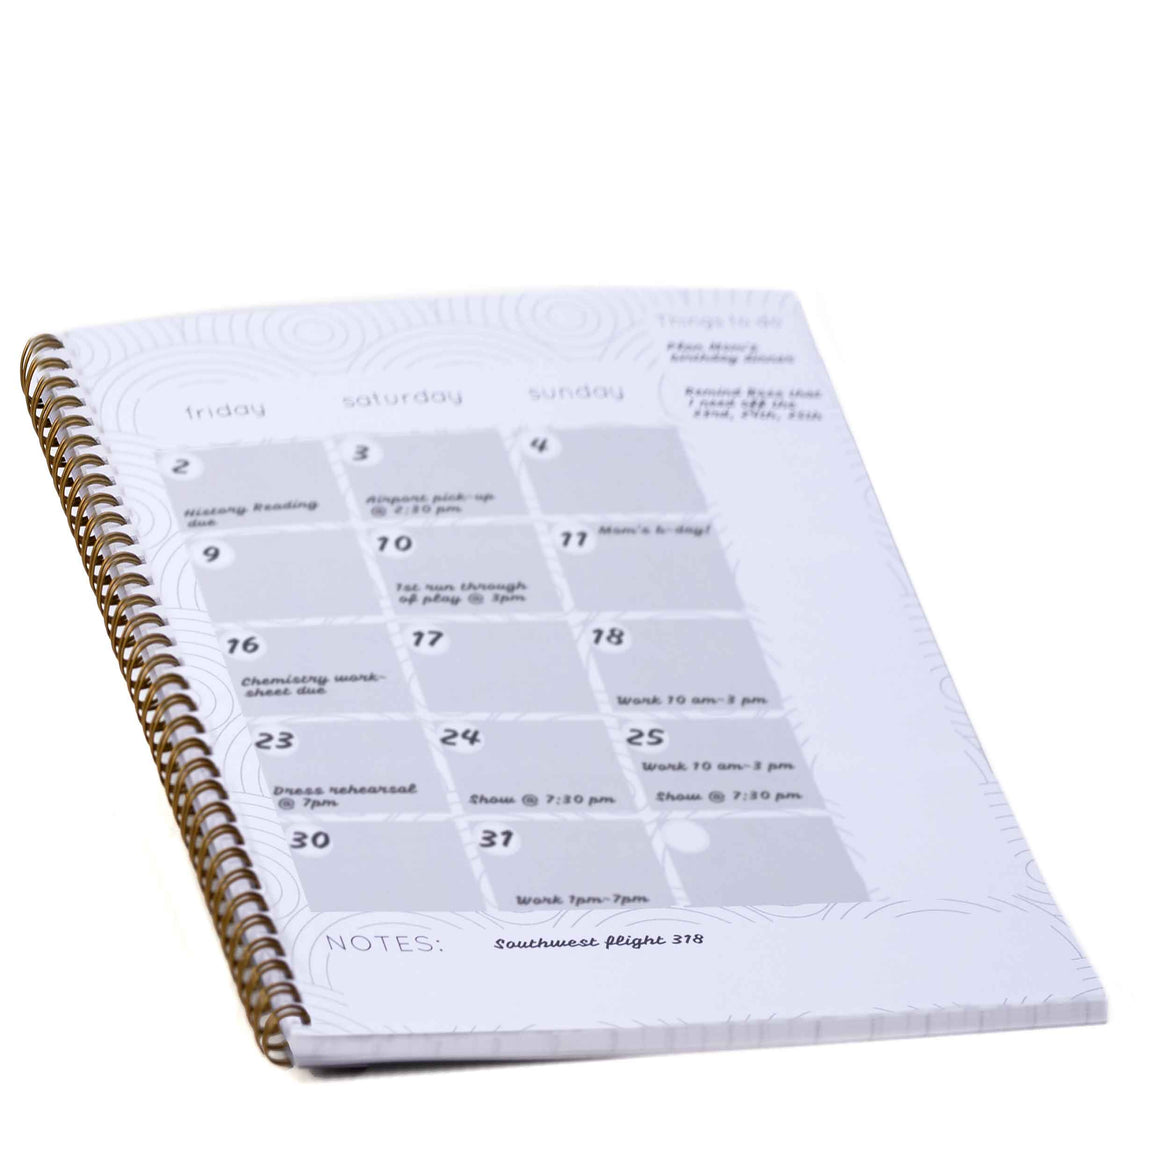 Daily Planner Inside Schedule Page product image - included with Dr. Don's Care Packages College Student Care Package.